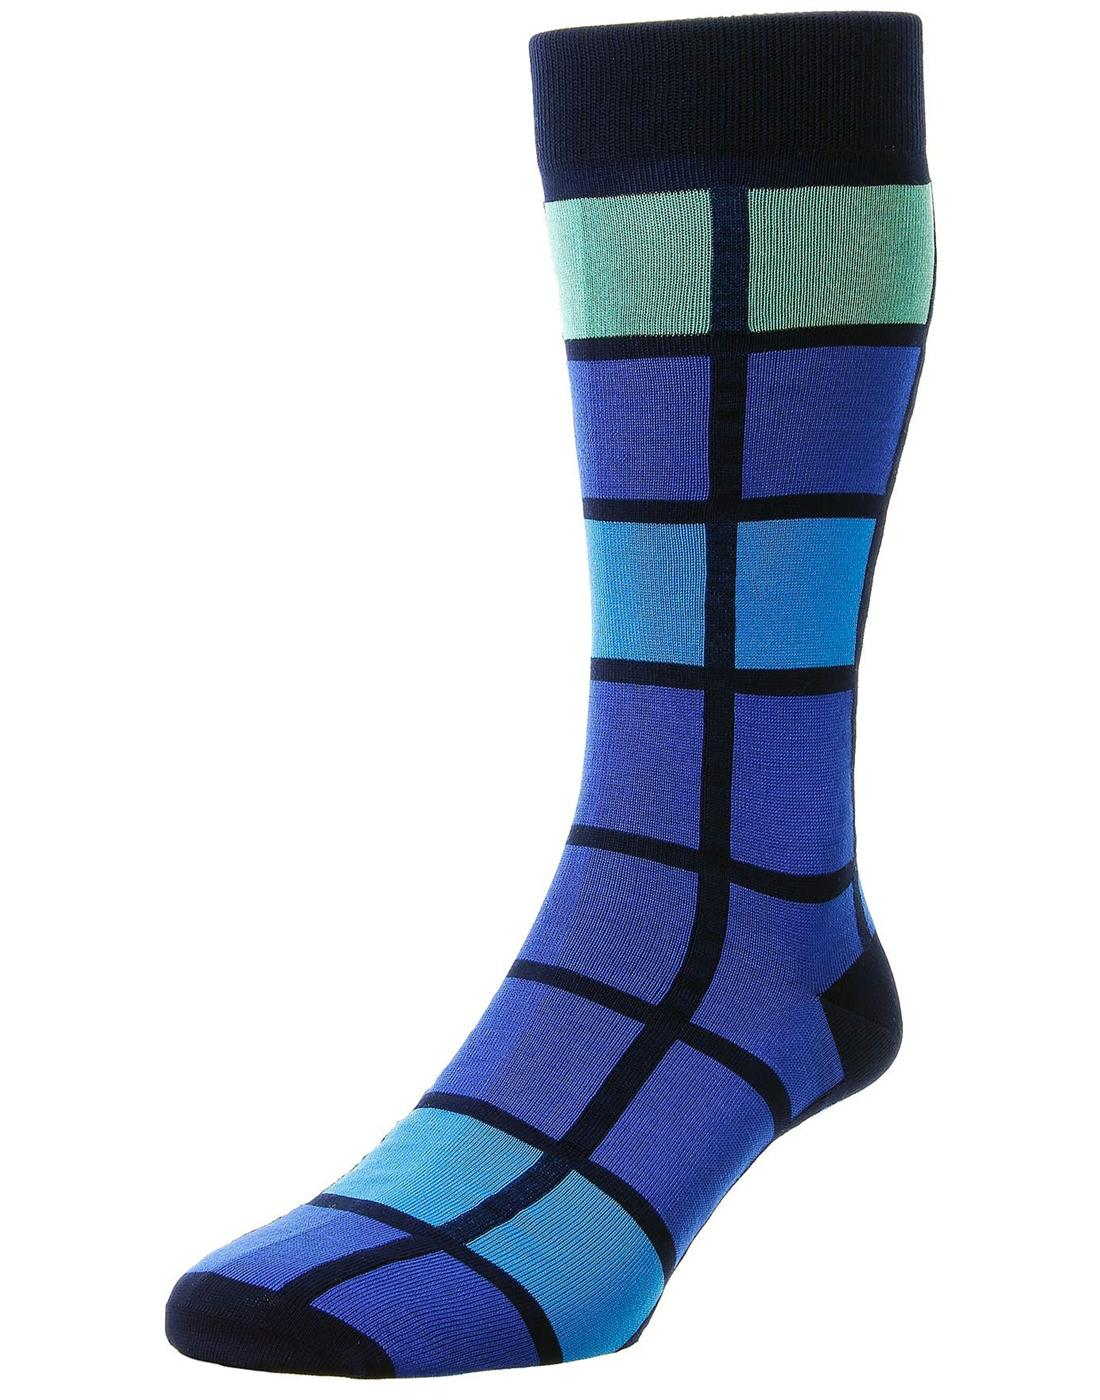 + Kauai PANTHERELLA Retro Windowpane Socks N